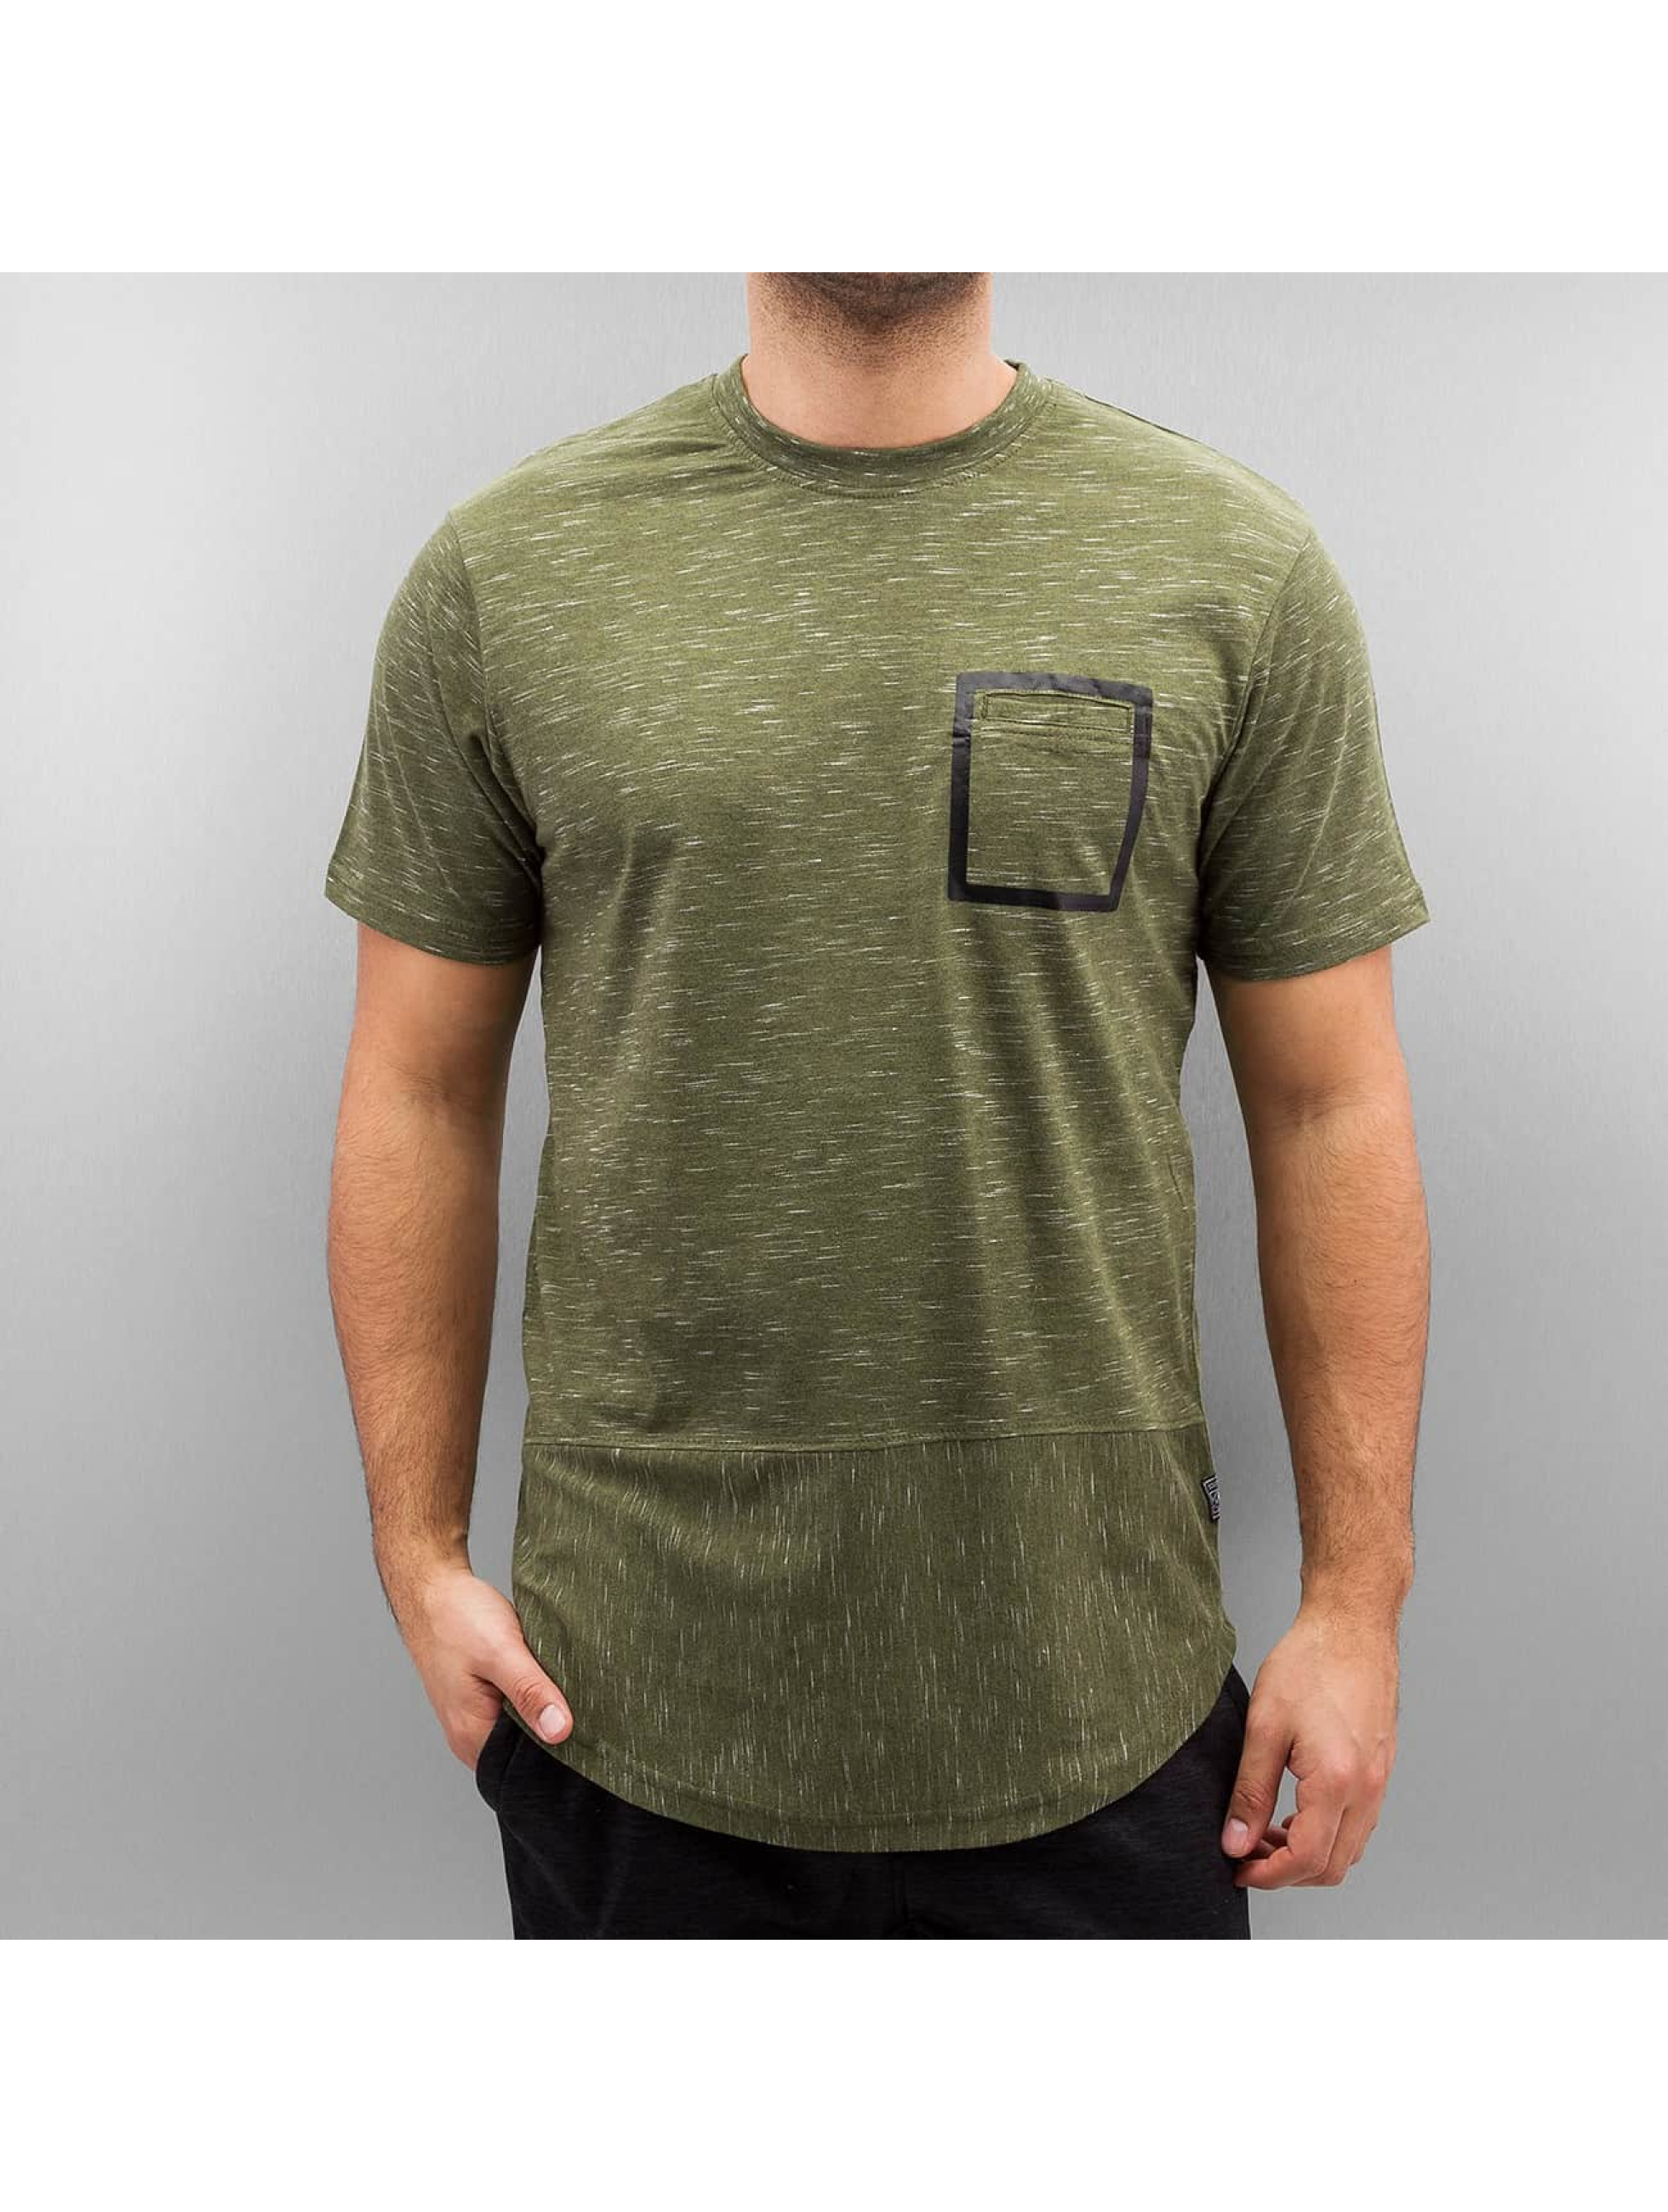 Southpole Männer T-Shirt Slub Scallop in olive